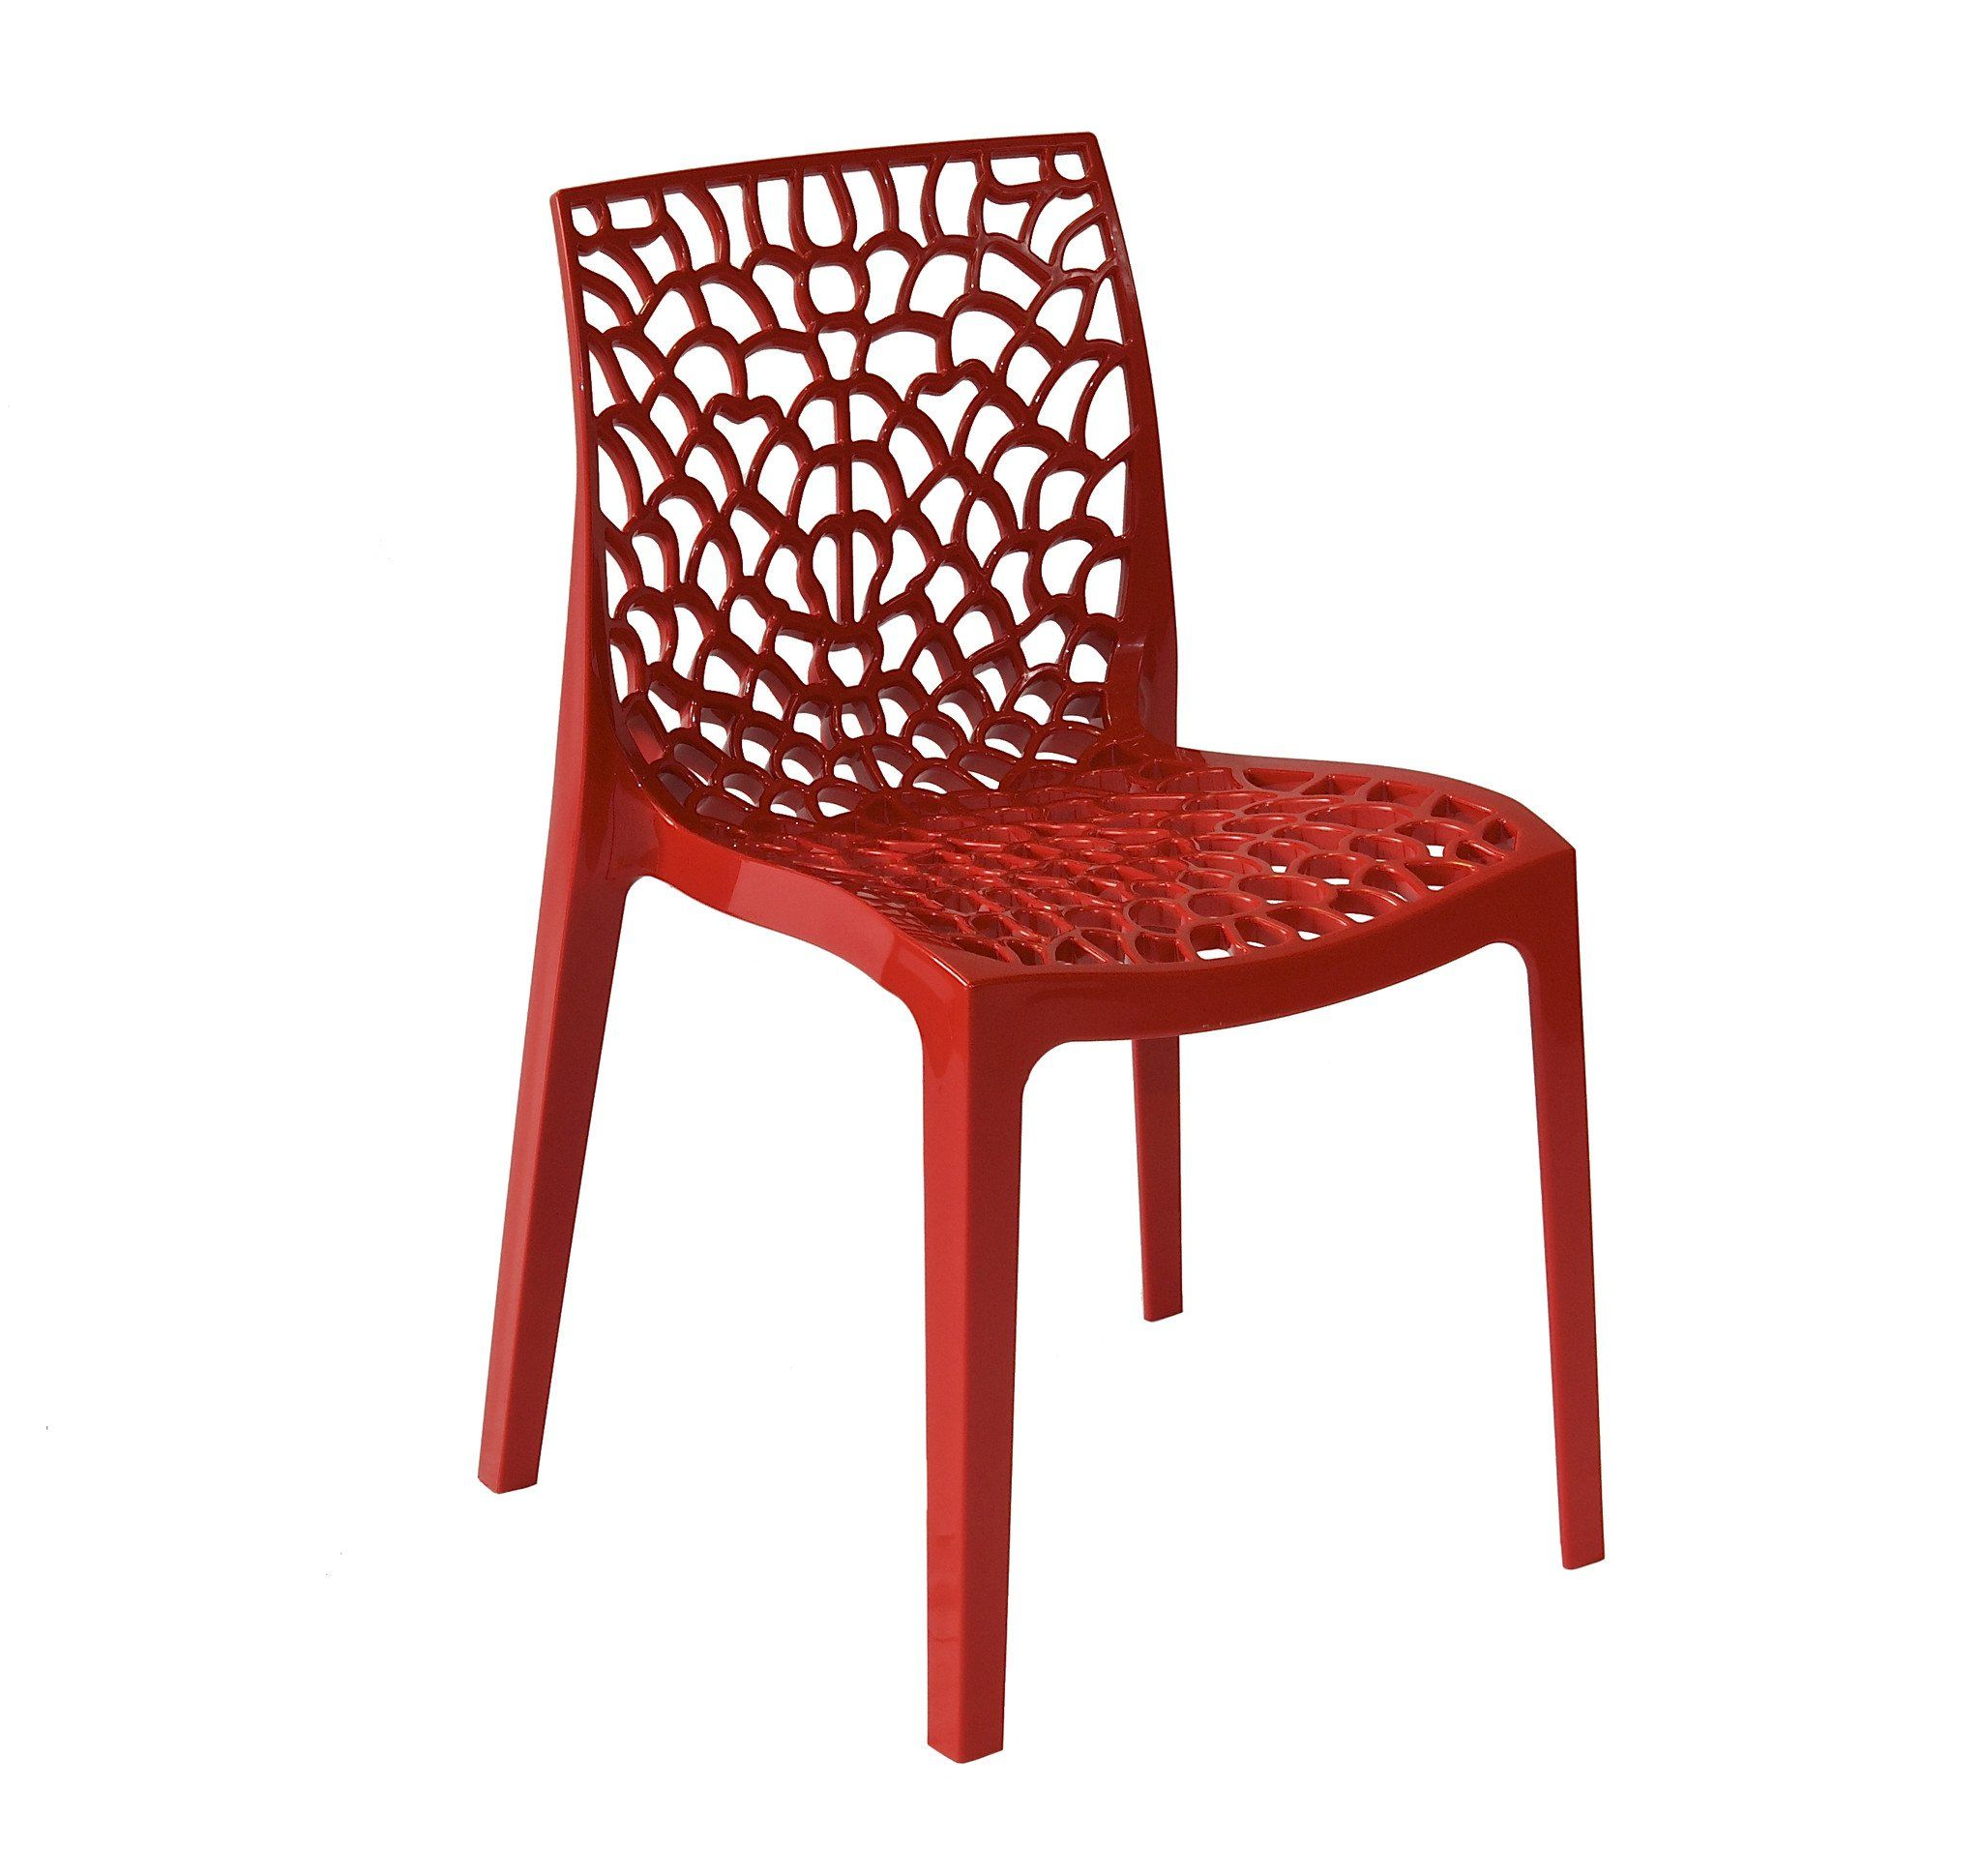 Gruvyer Outdoor Chair Red Patio Pinterest Integrity And Patios # Gadsden Muebles